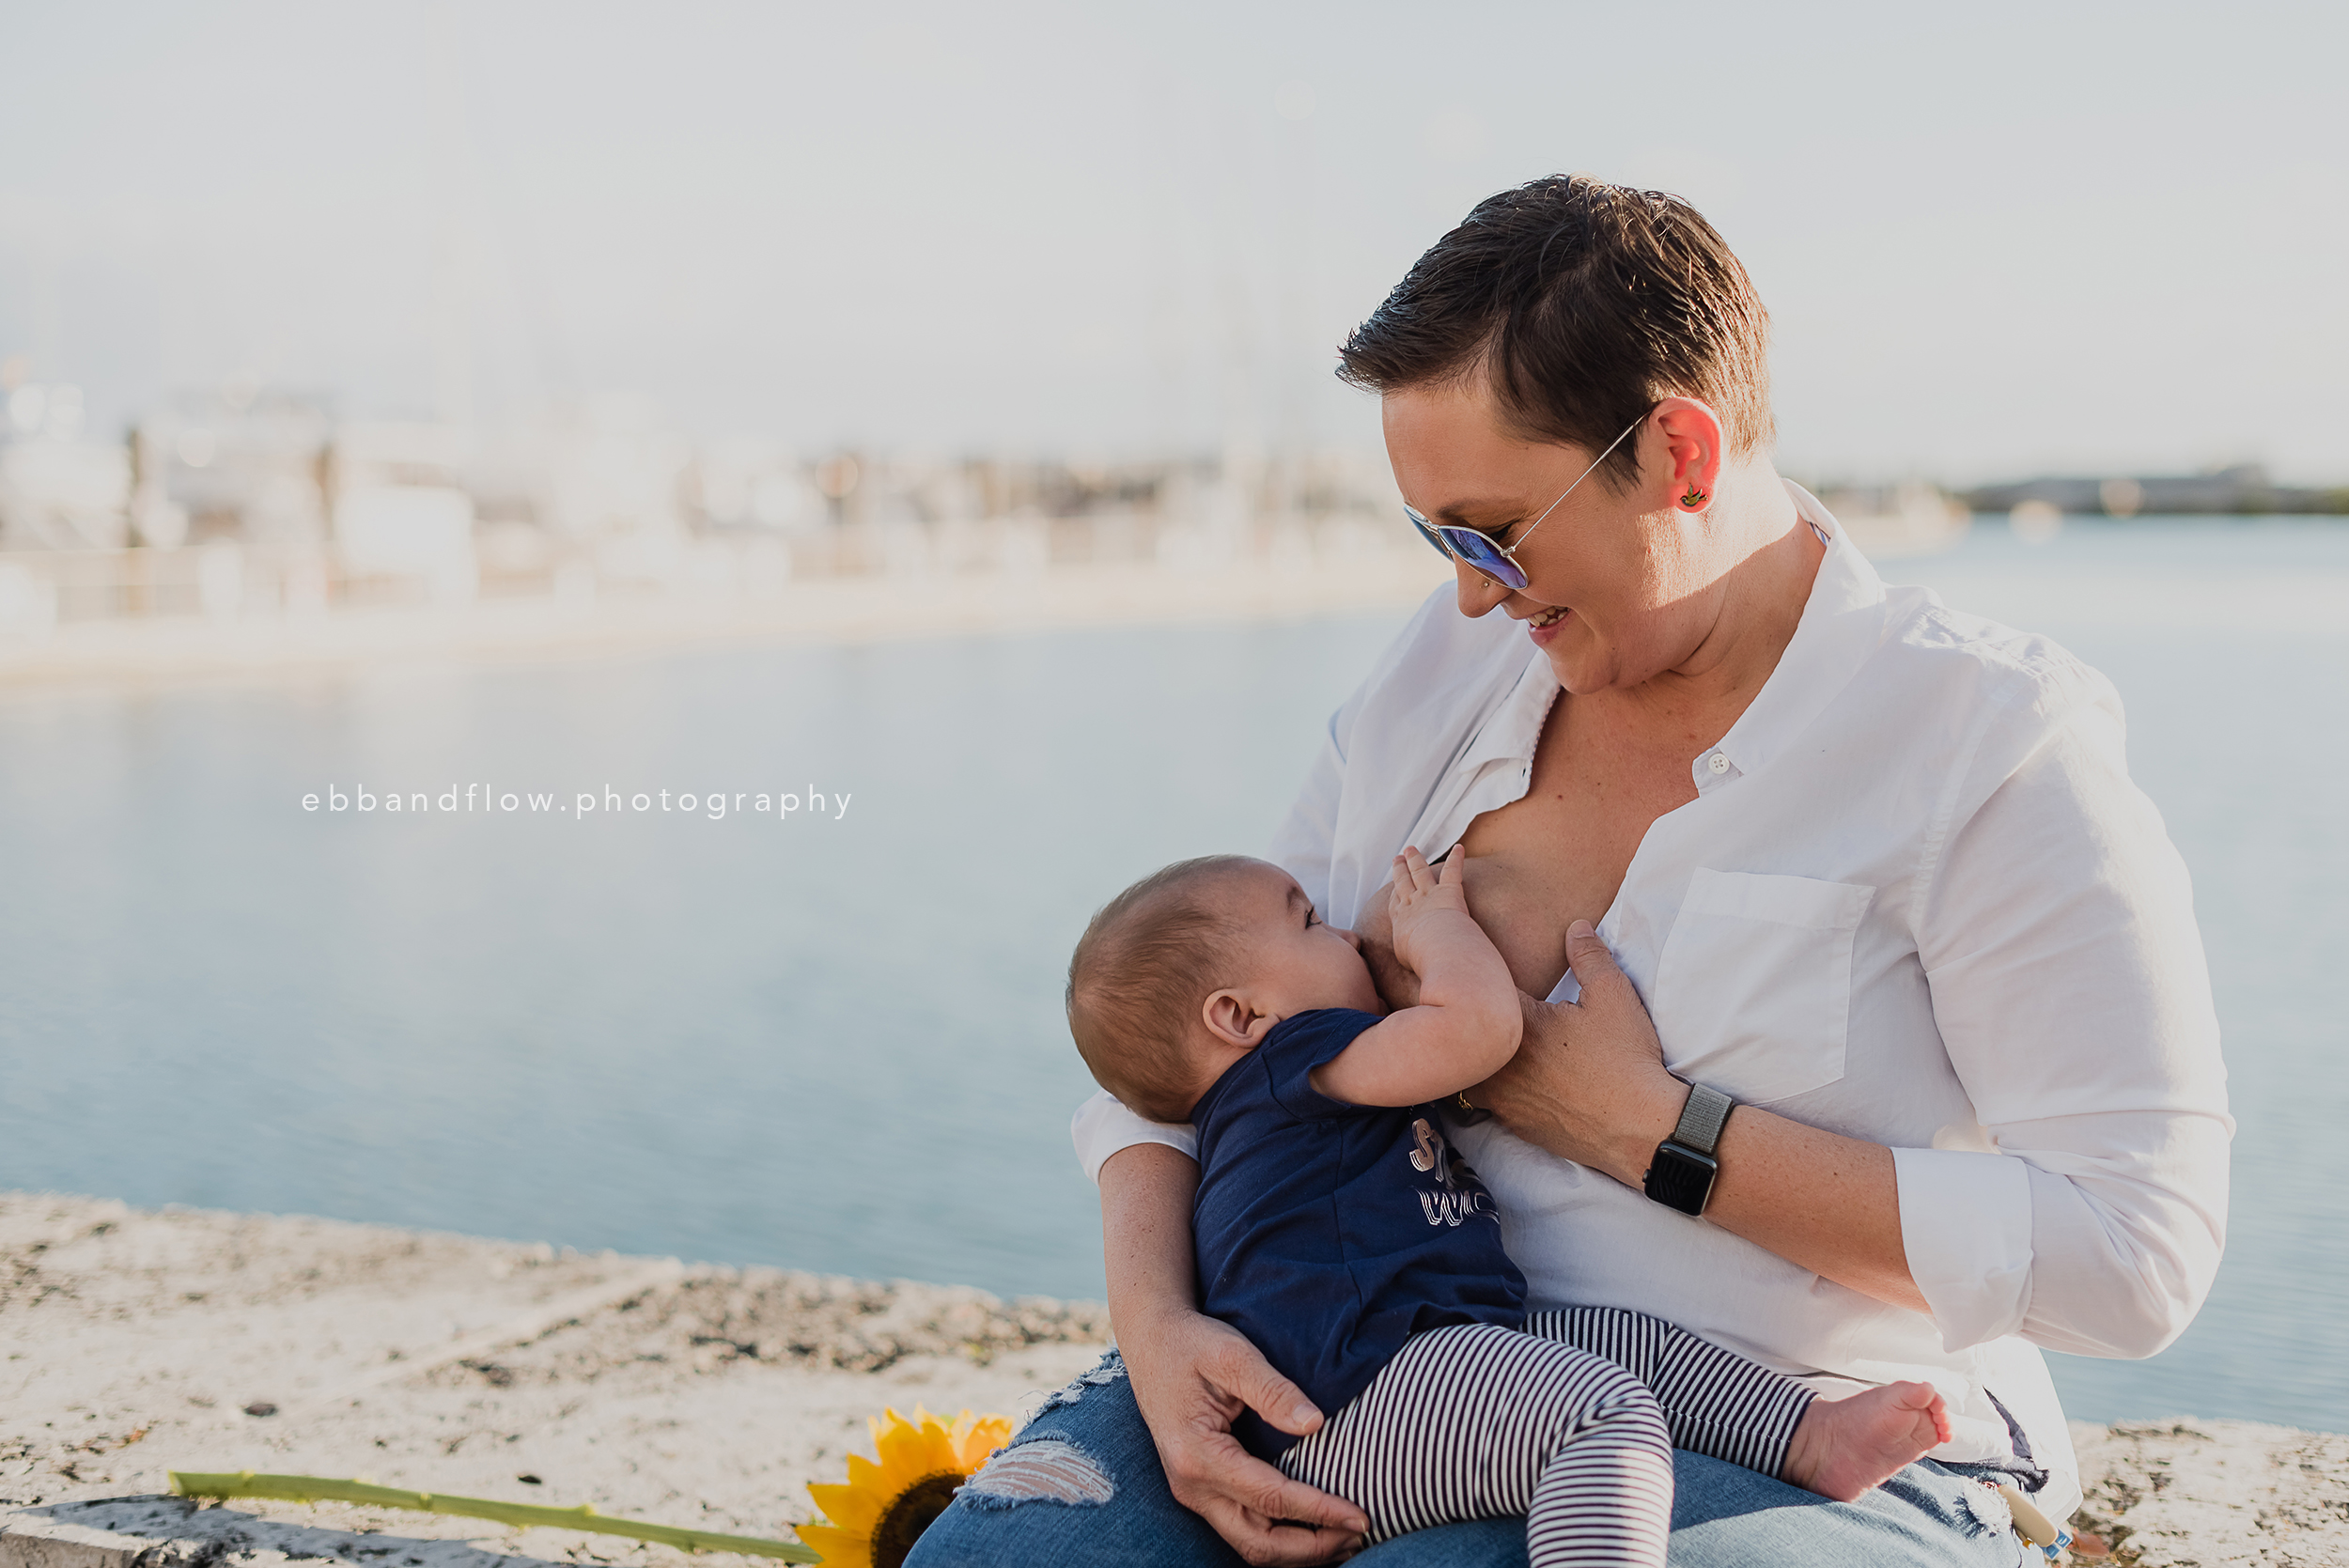 Fort Pierce Breastfeeding Photography - Ebb and Flow Photography -  breastfeeding by the marina.jpg